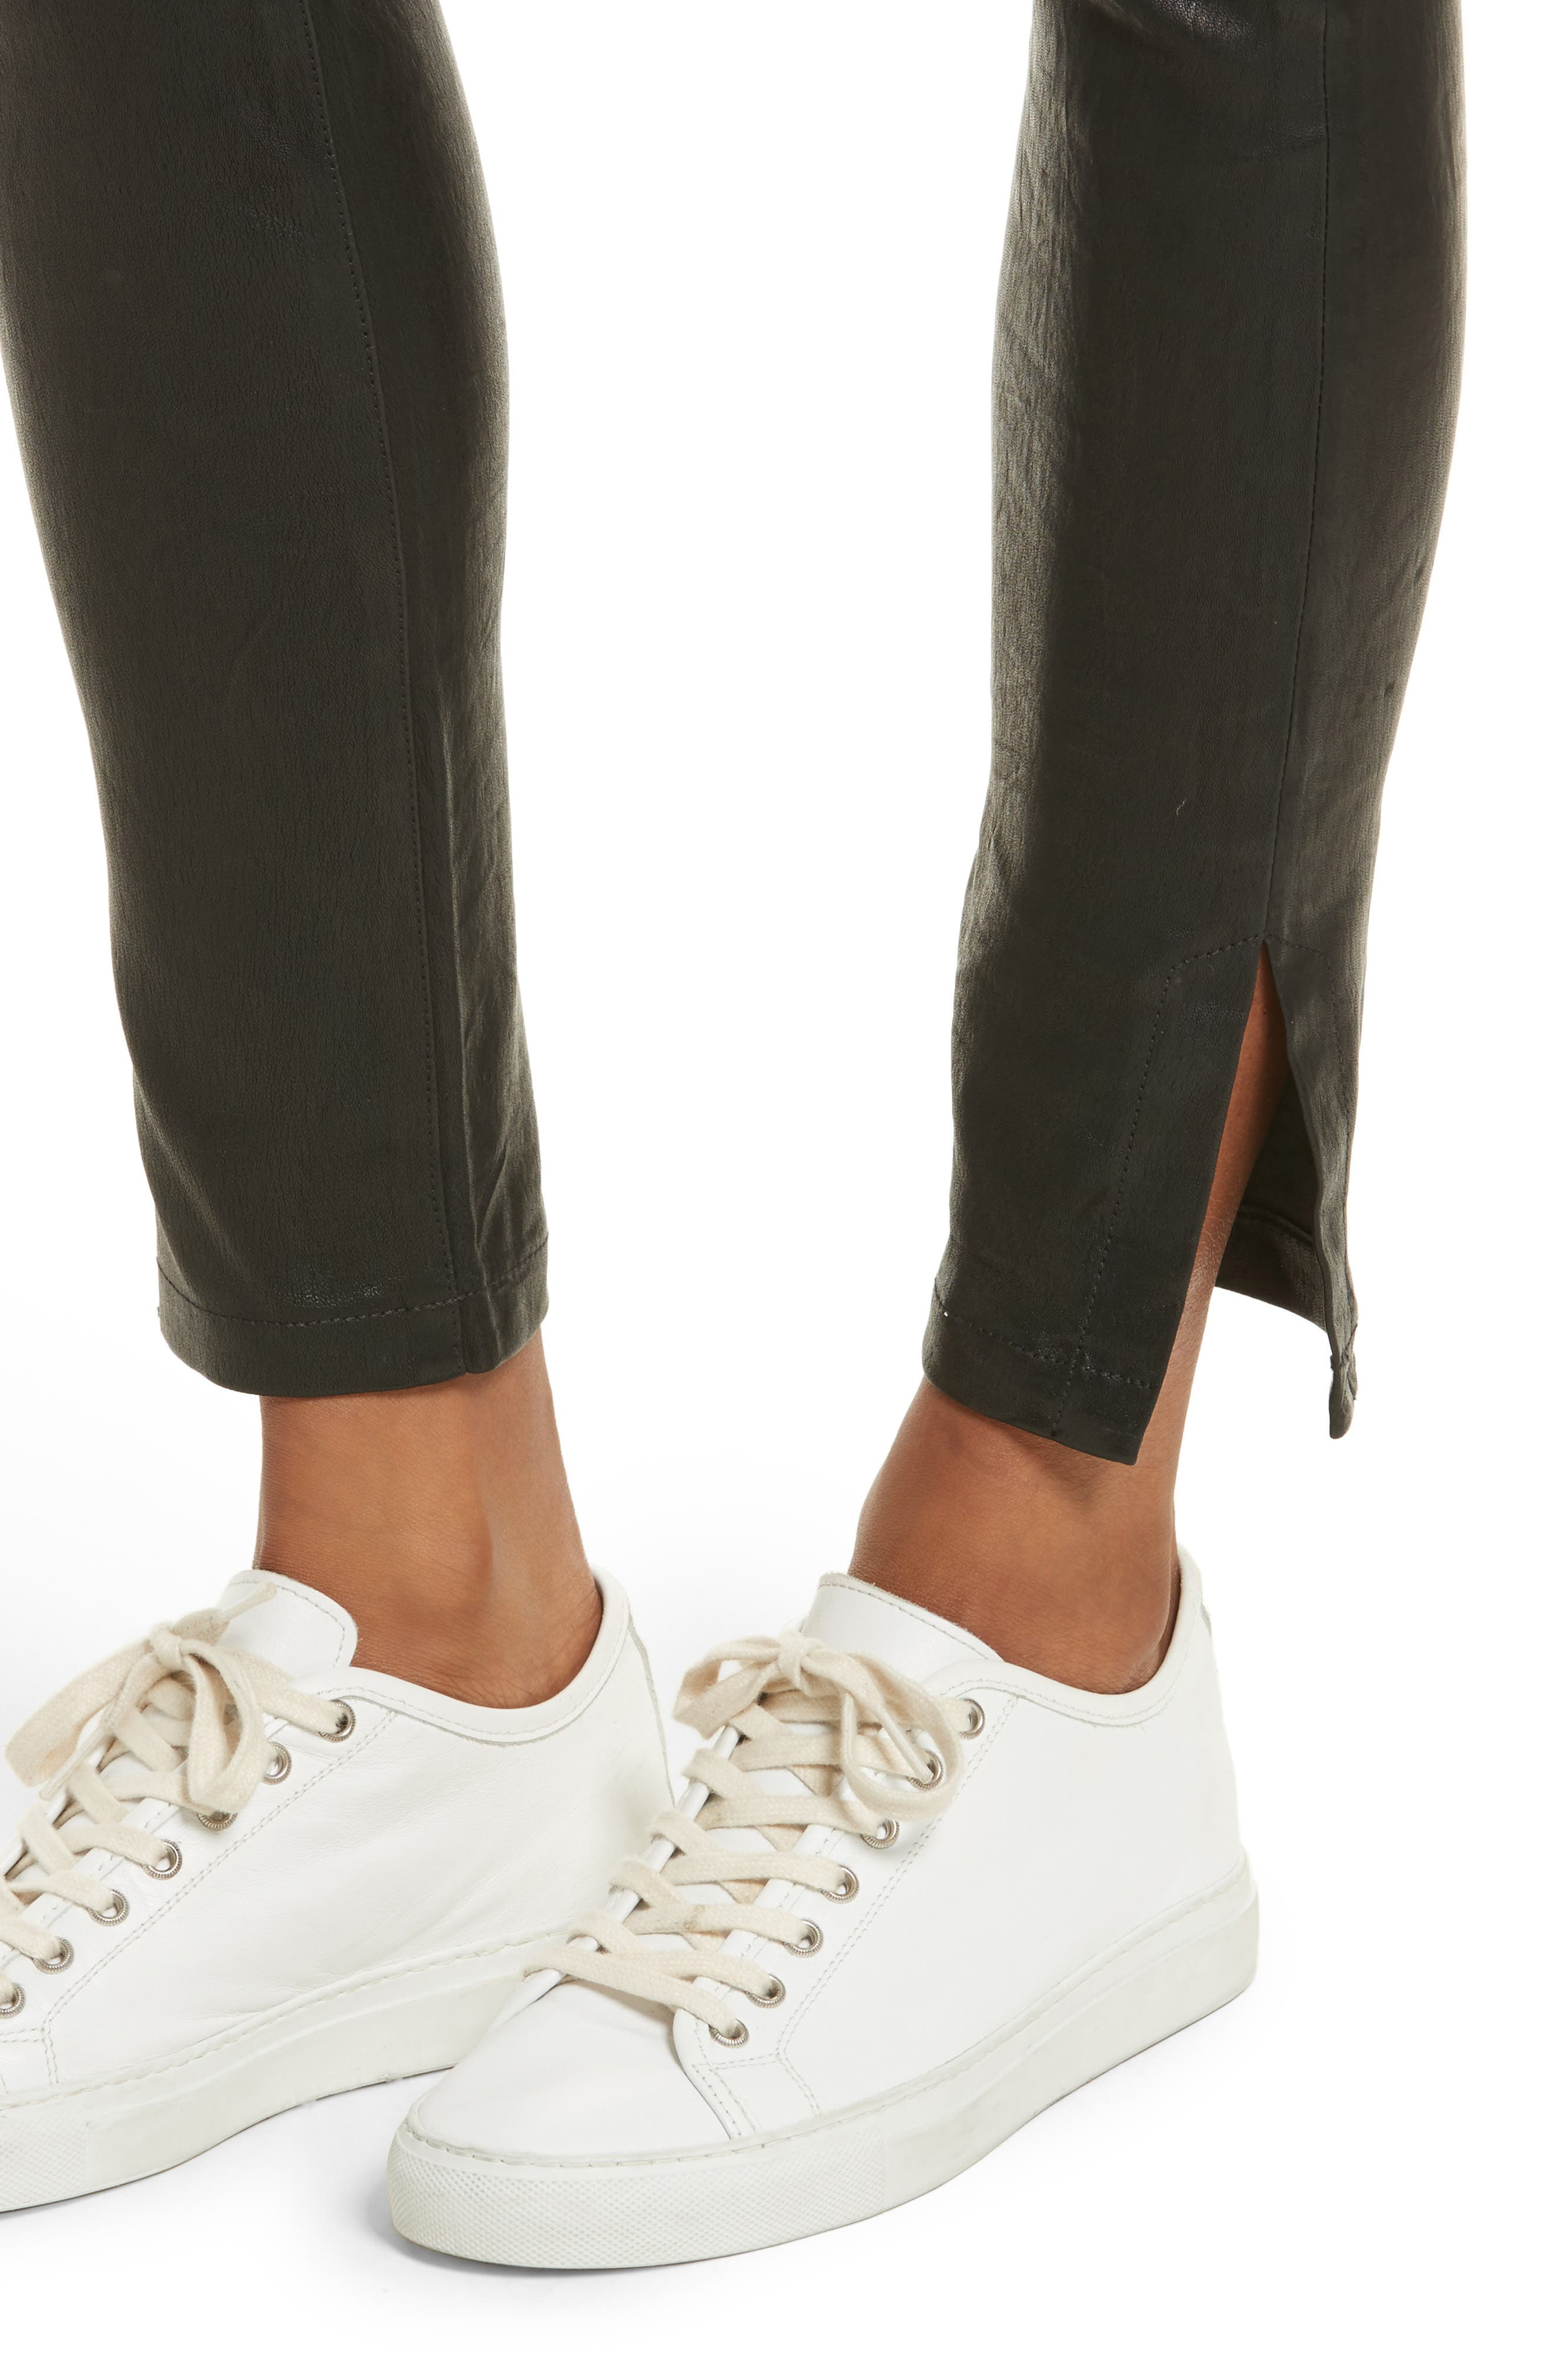 Le High Skinny Slit Leather Pants,                             Alternate thumbnail 4, color,                             001